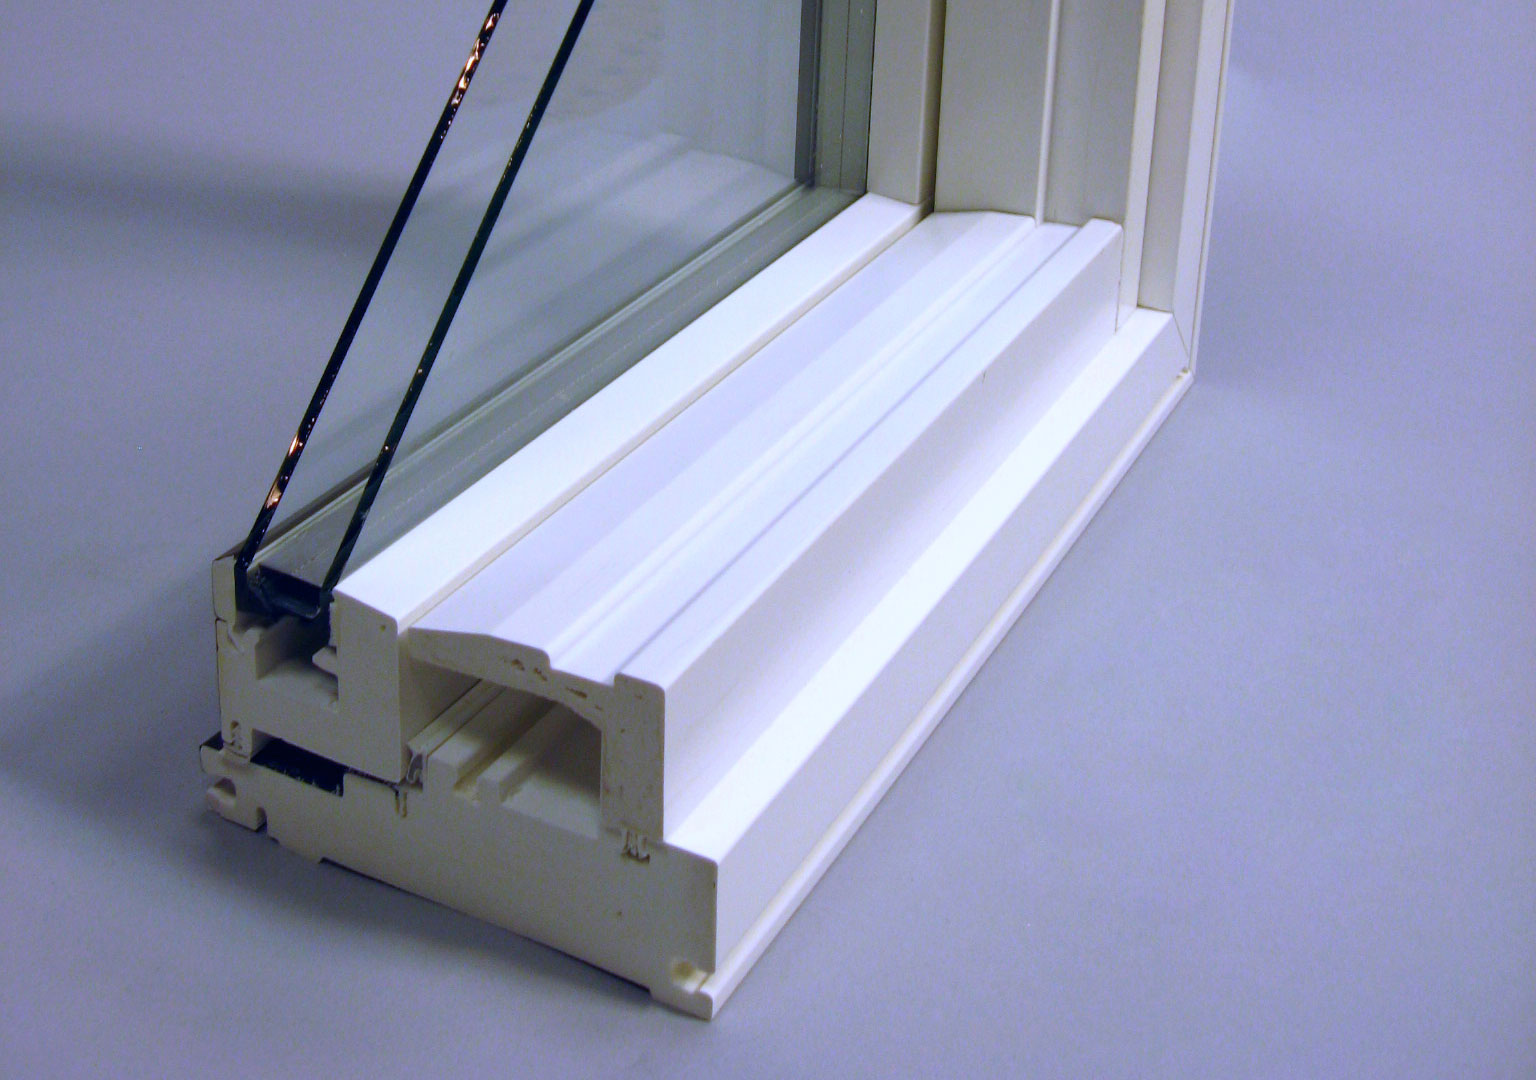 Composites As High Performance Building Solutions Green Electrical Insulation Domestic Futures Just Polyvinyl Chloride Pvc Is Often Used The Thermoplastic Matrix In Window Applications Although Other Plastics Are Also Employed